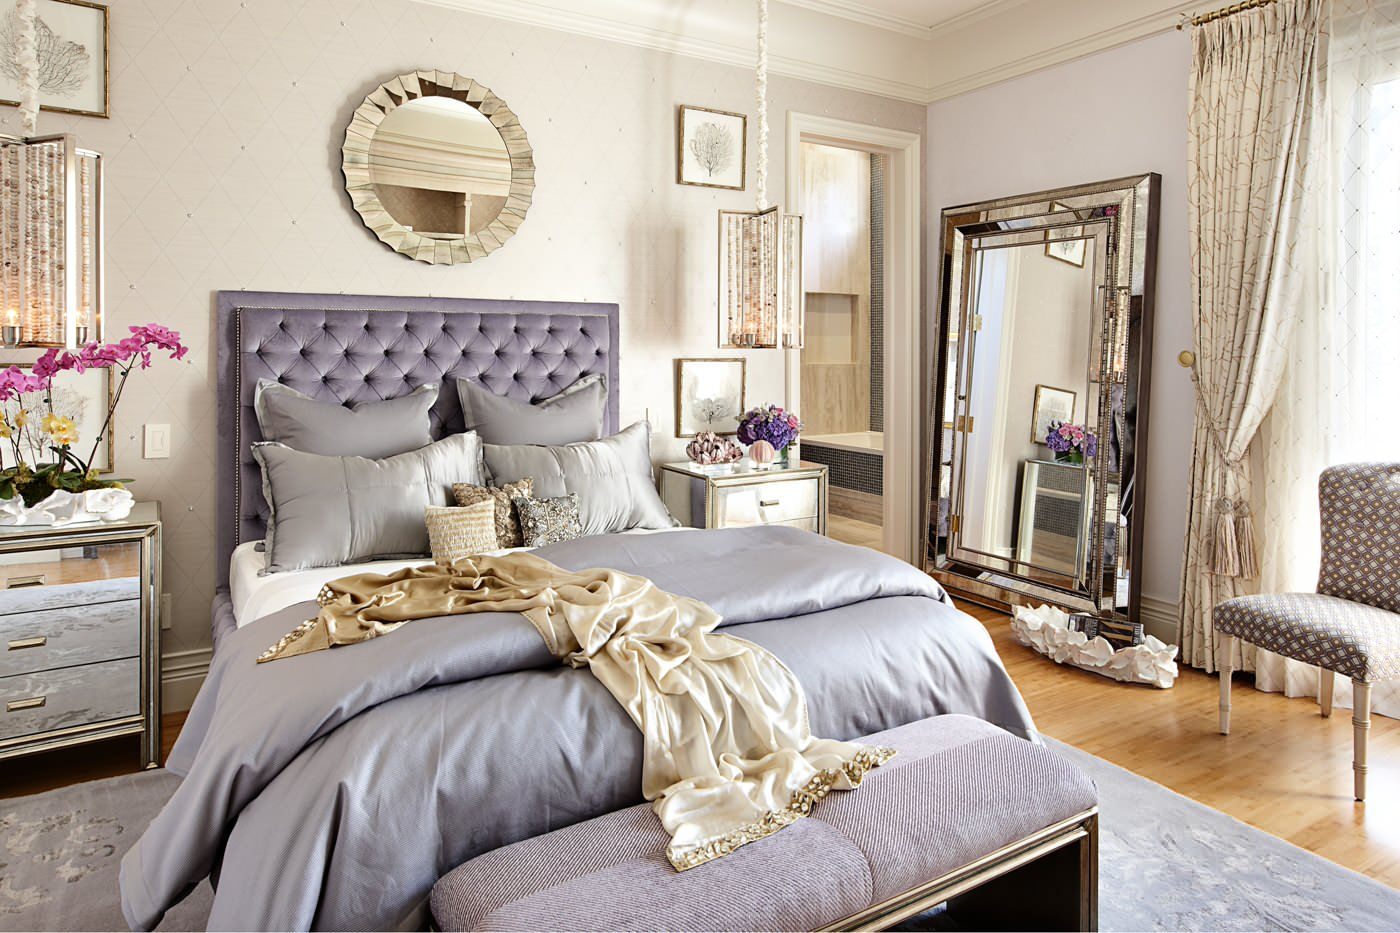 las vegas bedroom purple princess adult idea shop room ideas mirror nightstand wall mirror silver houzz - Shop Bedroom Decor